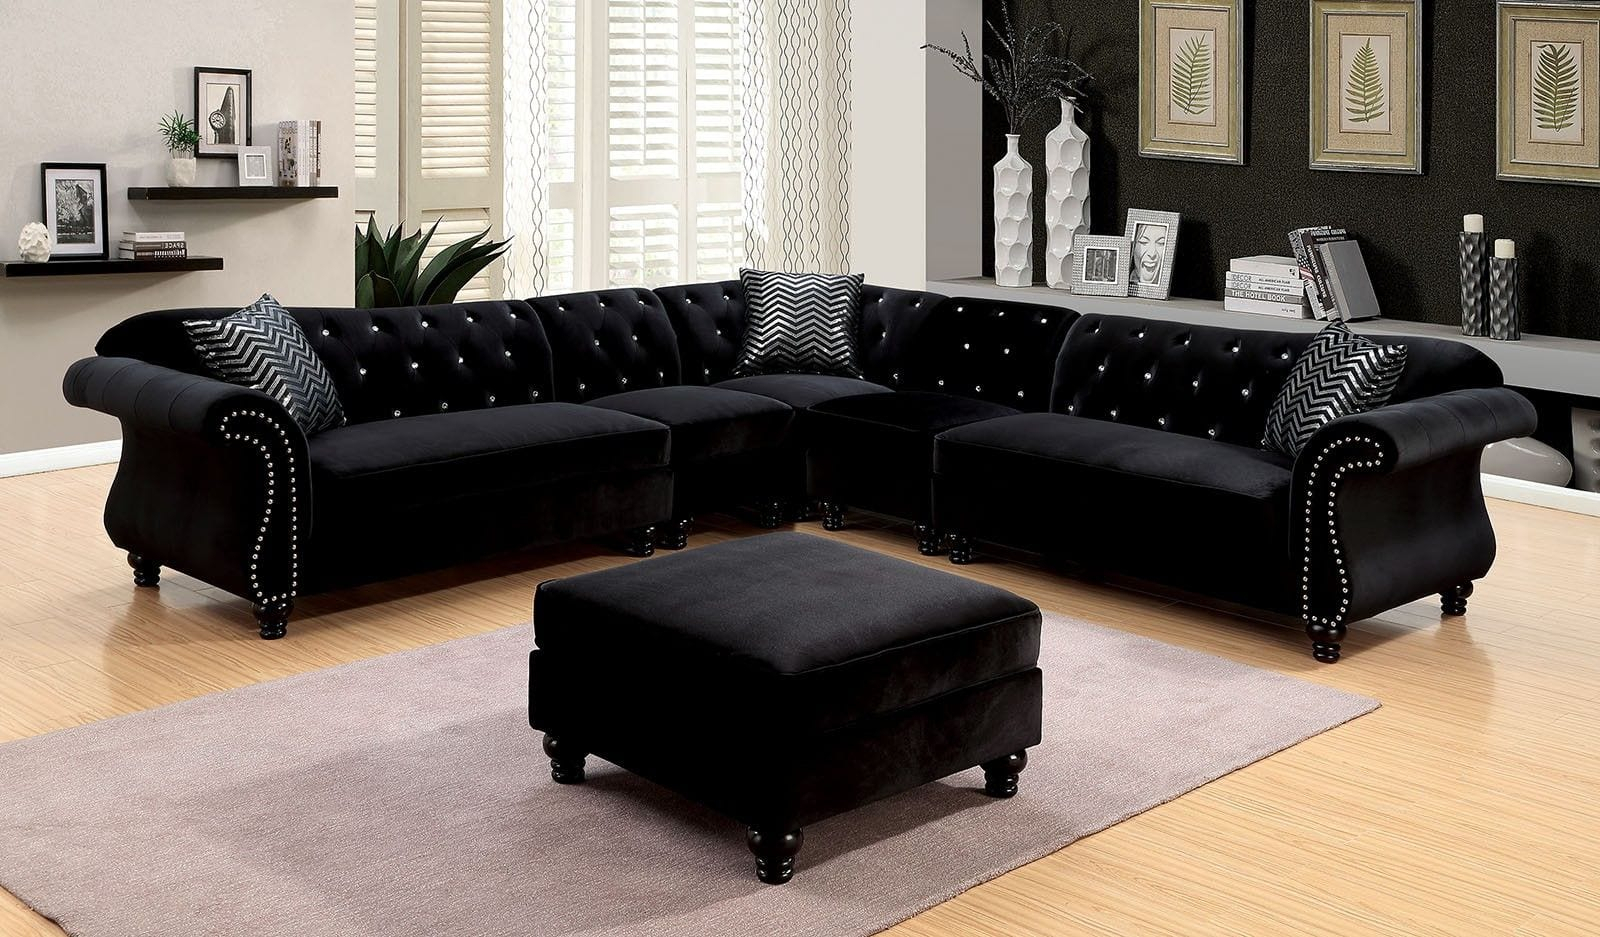 Cm6158Bk Jolanda Black Traditional Sectional Sofa – Luchy Regarding Lounge Sofas And Chairs (View 6 of 15)